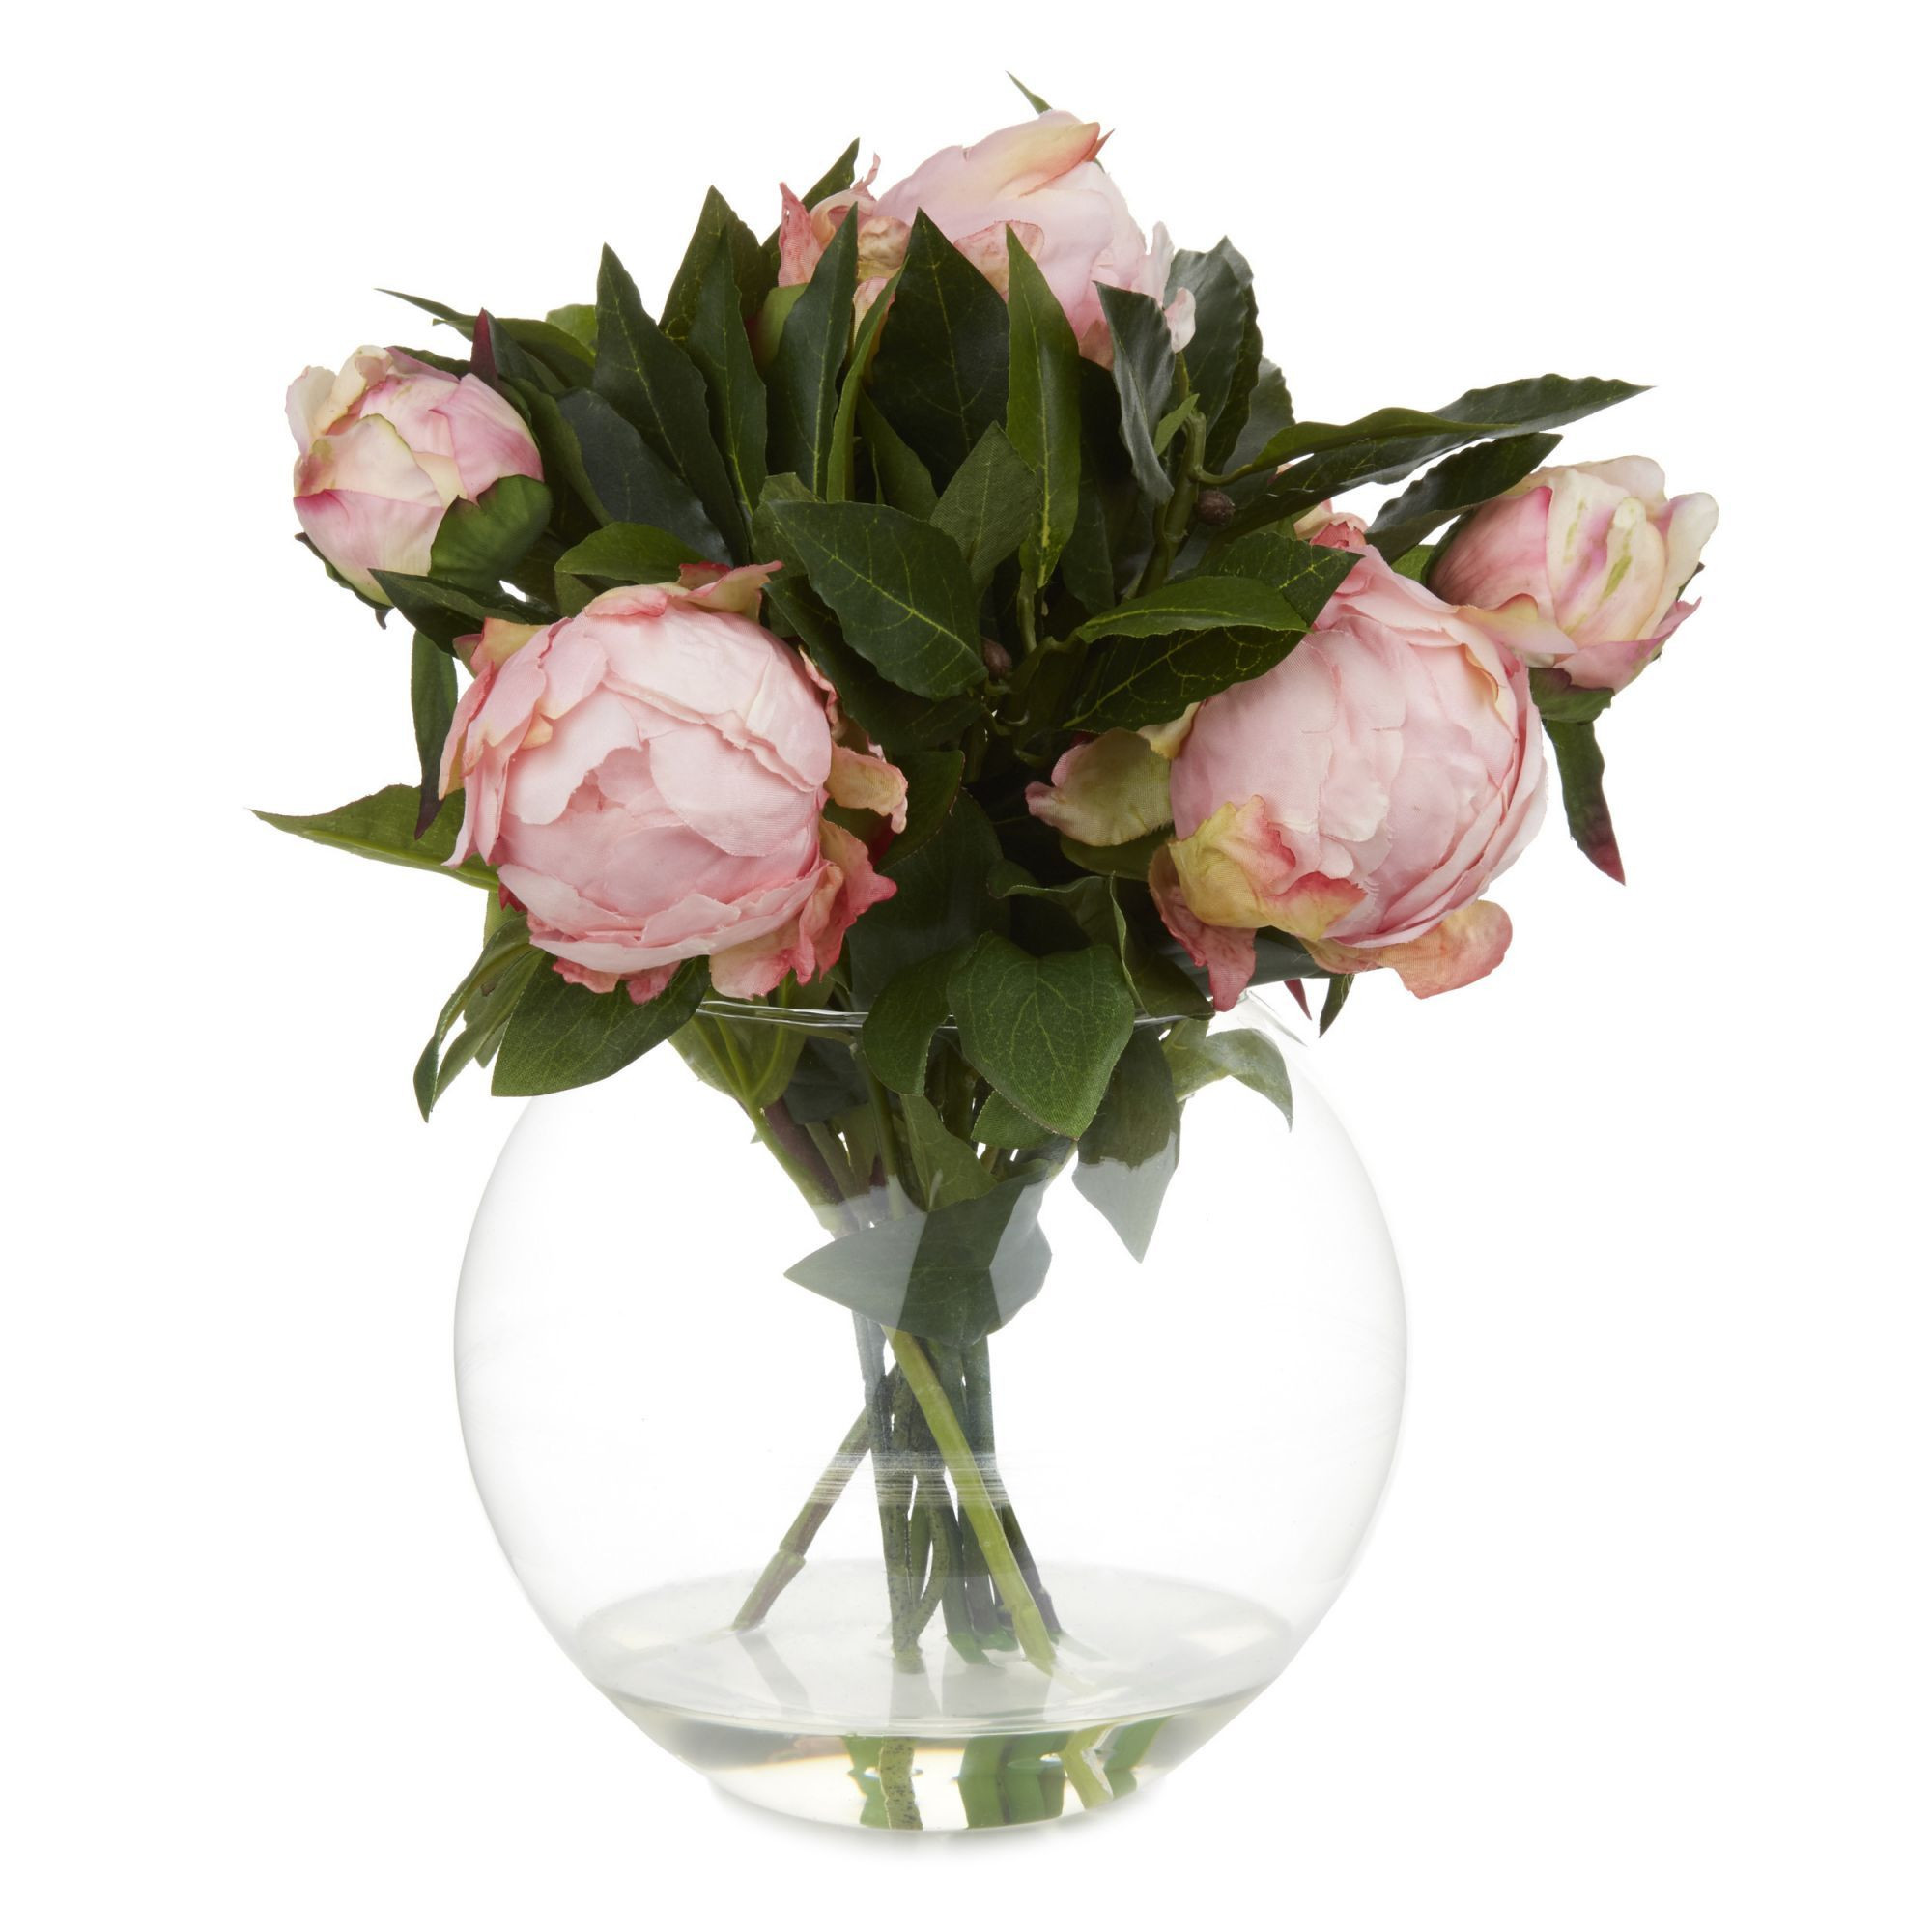 hot pink flower vases of how to put roses in a vase beautiful pletely new fake product ideas with how to put roses in a vase beautiful pletely new fake product ideas fj55 documentaries